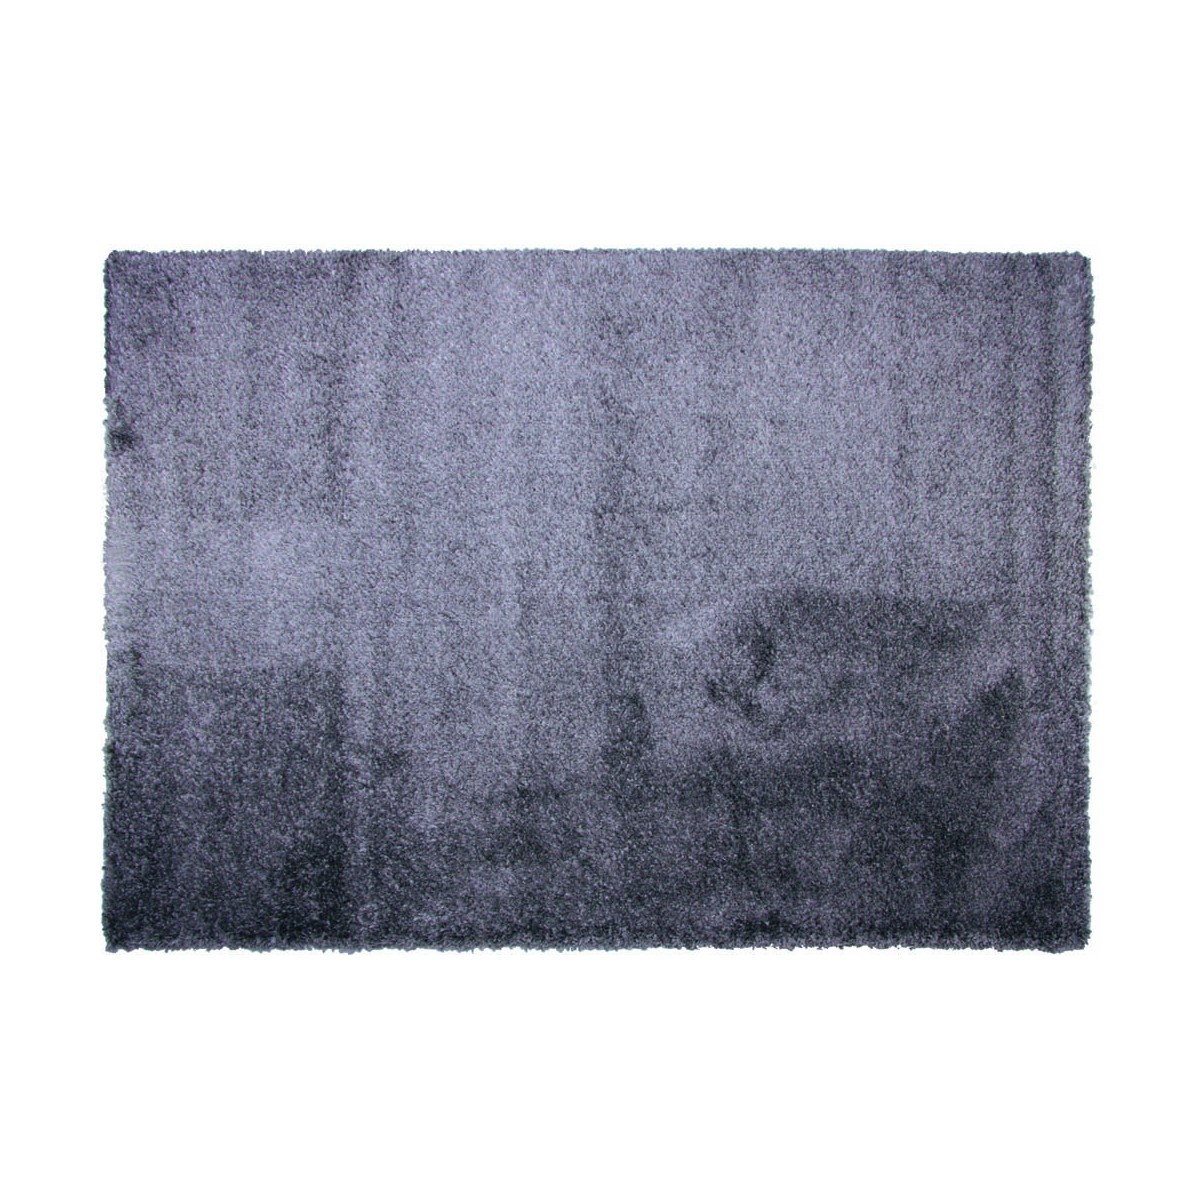 Tapis Uni Gris Marron Brooklyn Decoway Ksl Living